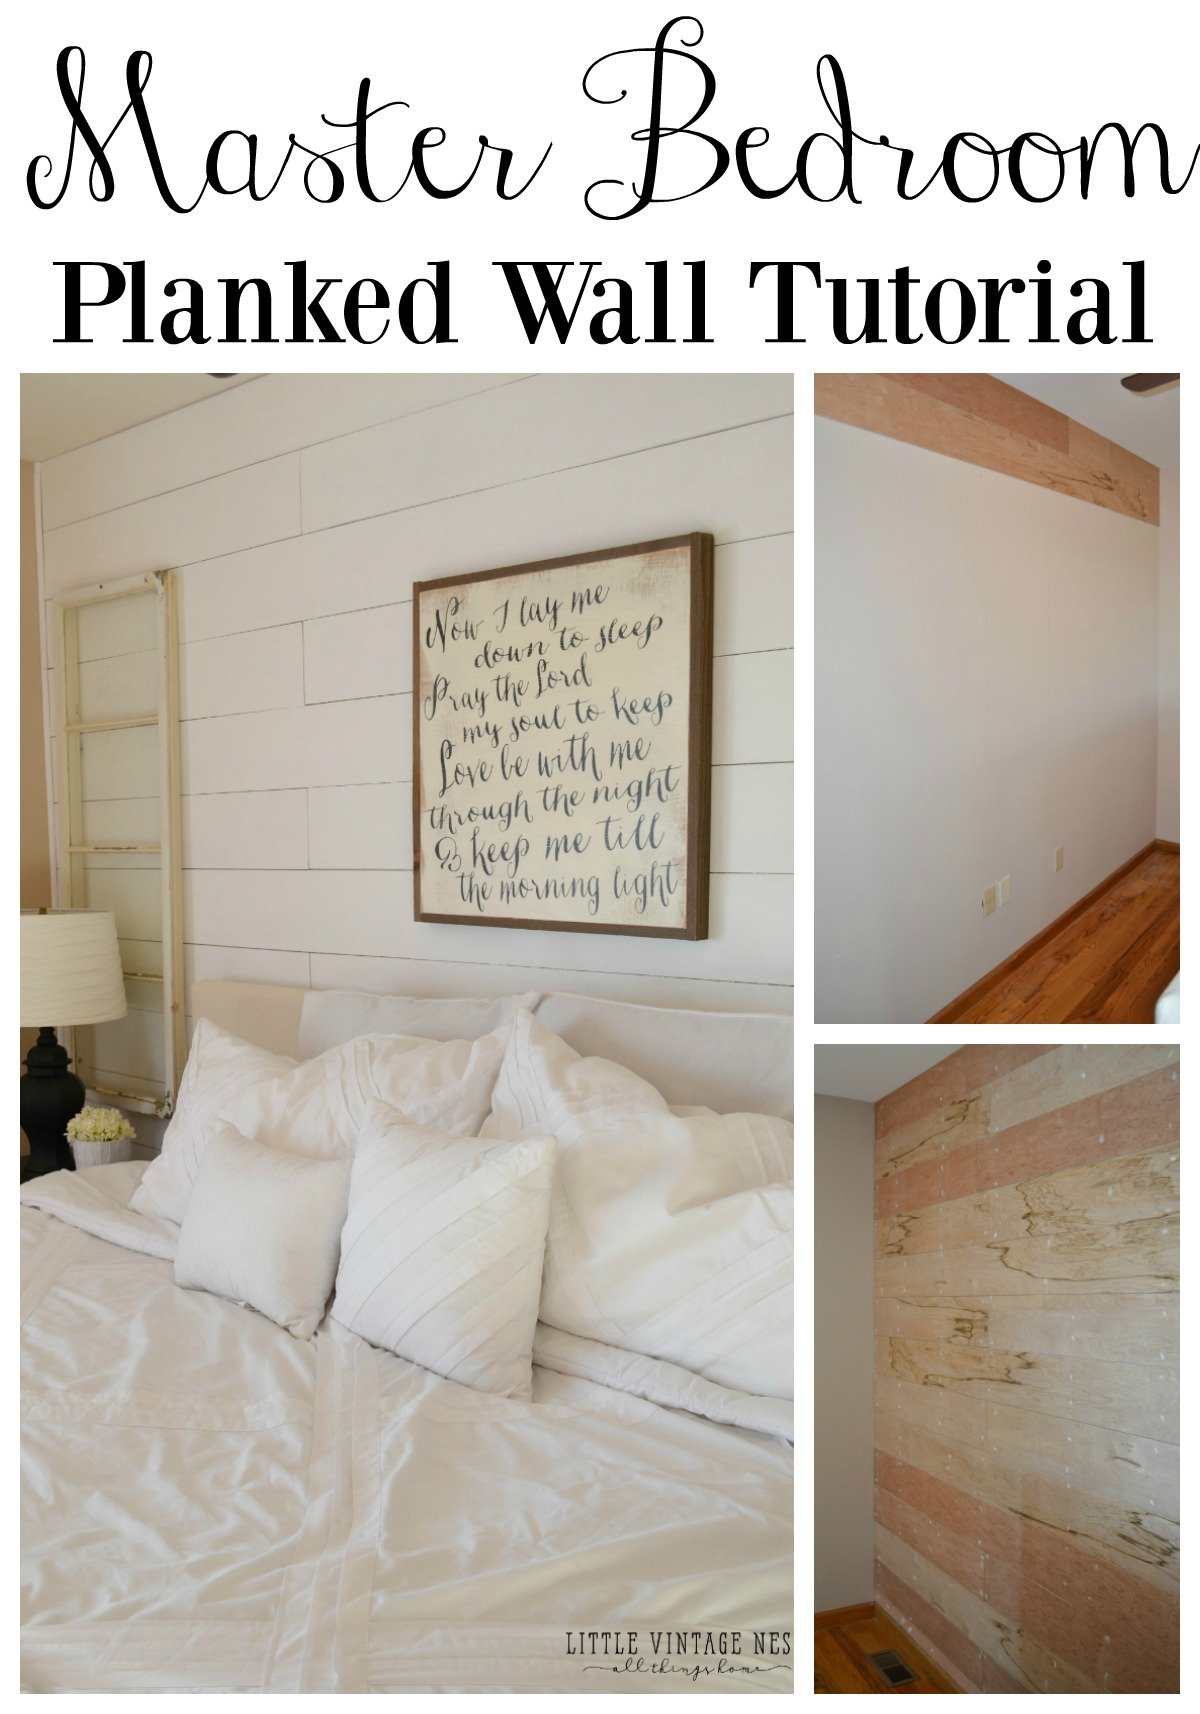 Master Bedroom Planked Wall Tutorial